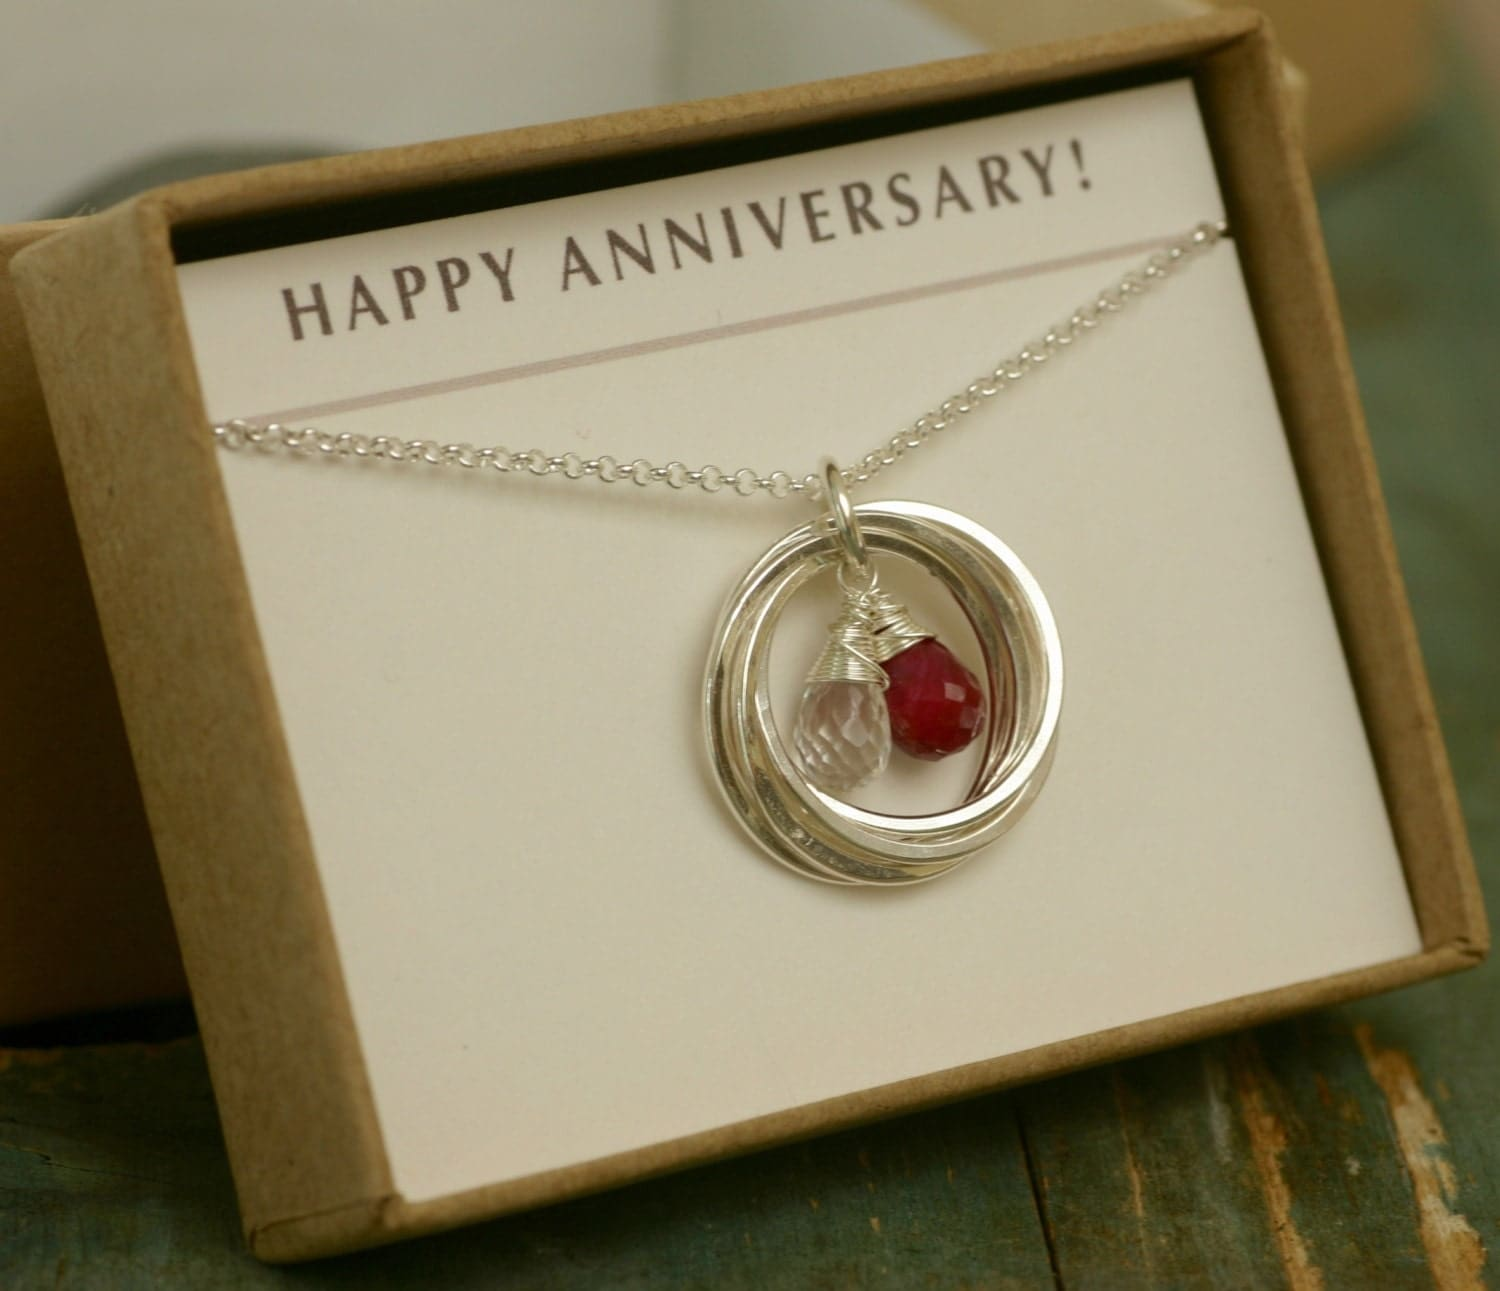 5th Anniversary Gifts For Her: 5th Anniversary Gift 5 Year Anniversary Gift 5th Wedding